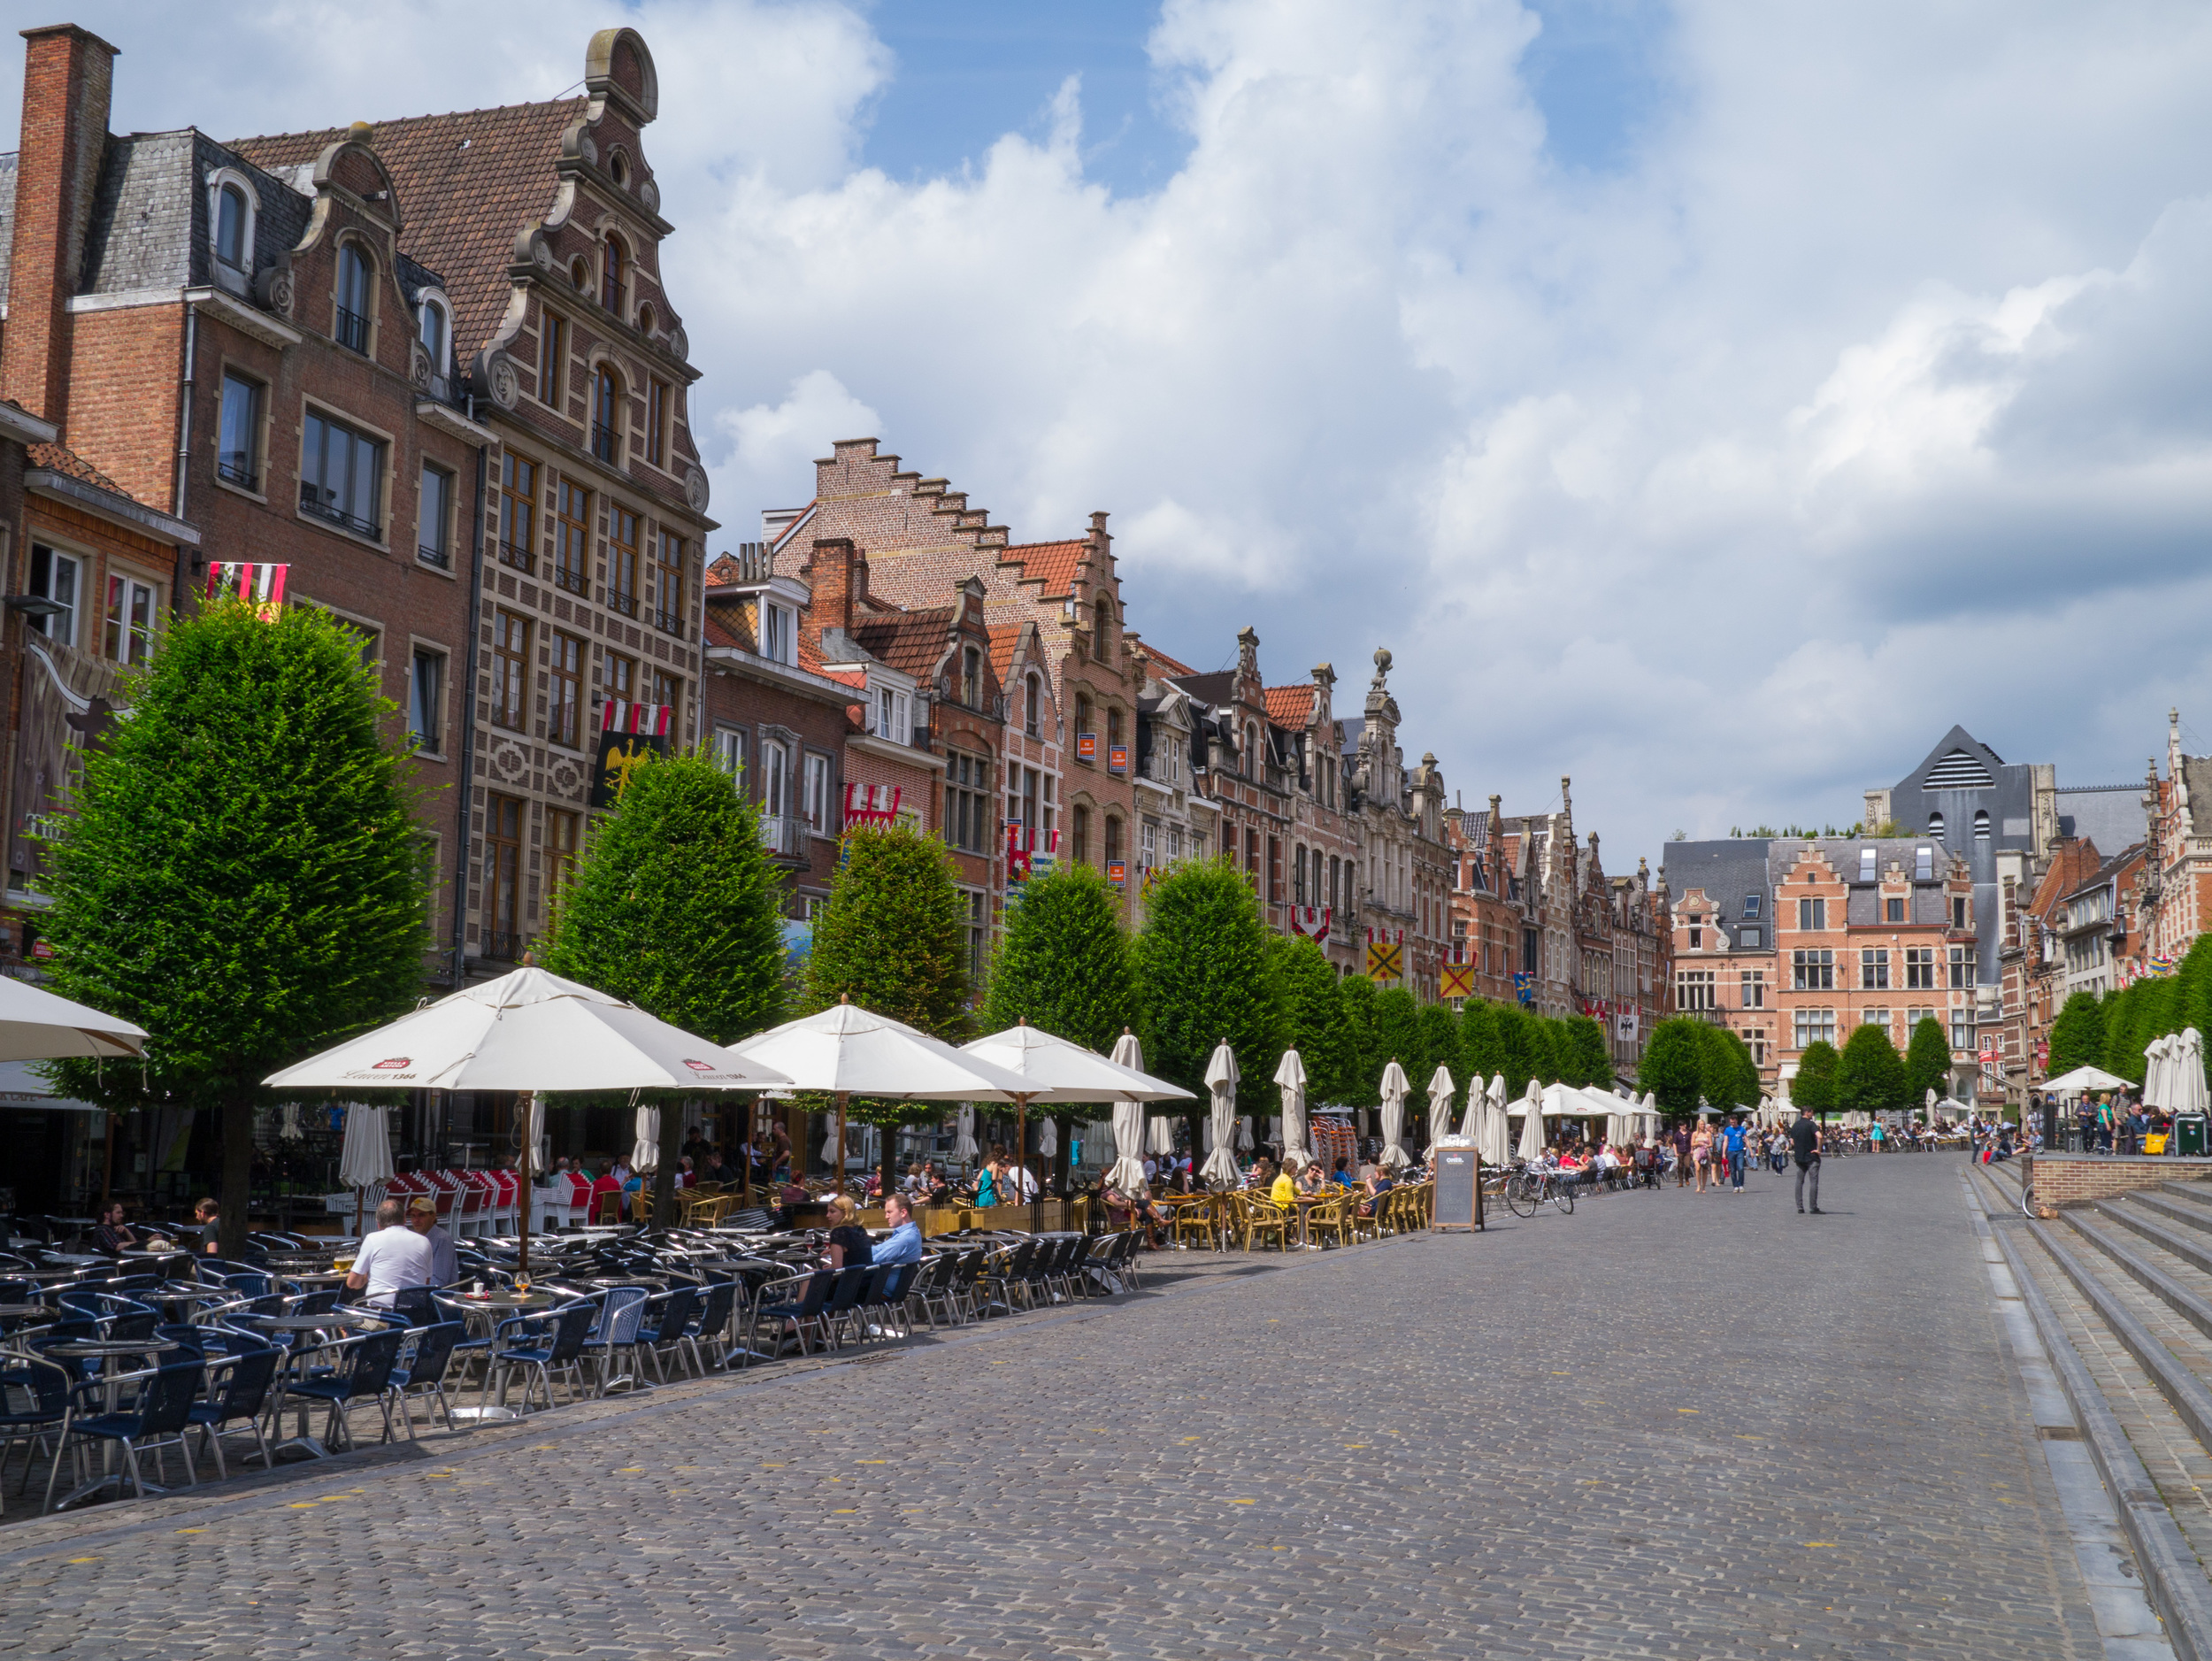 Less than half of Leuven's huge city square